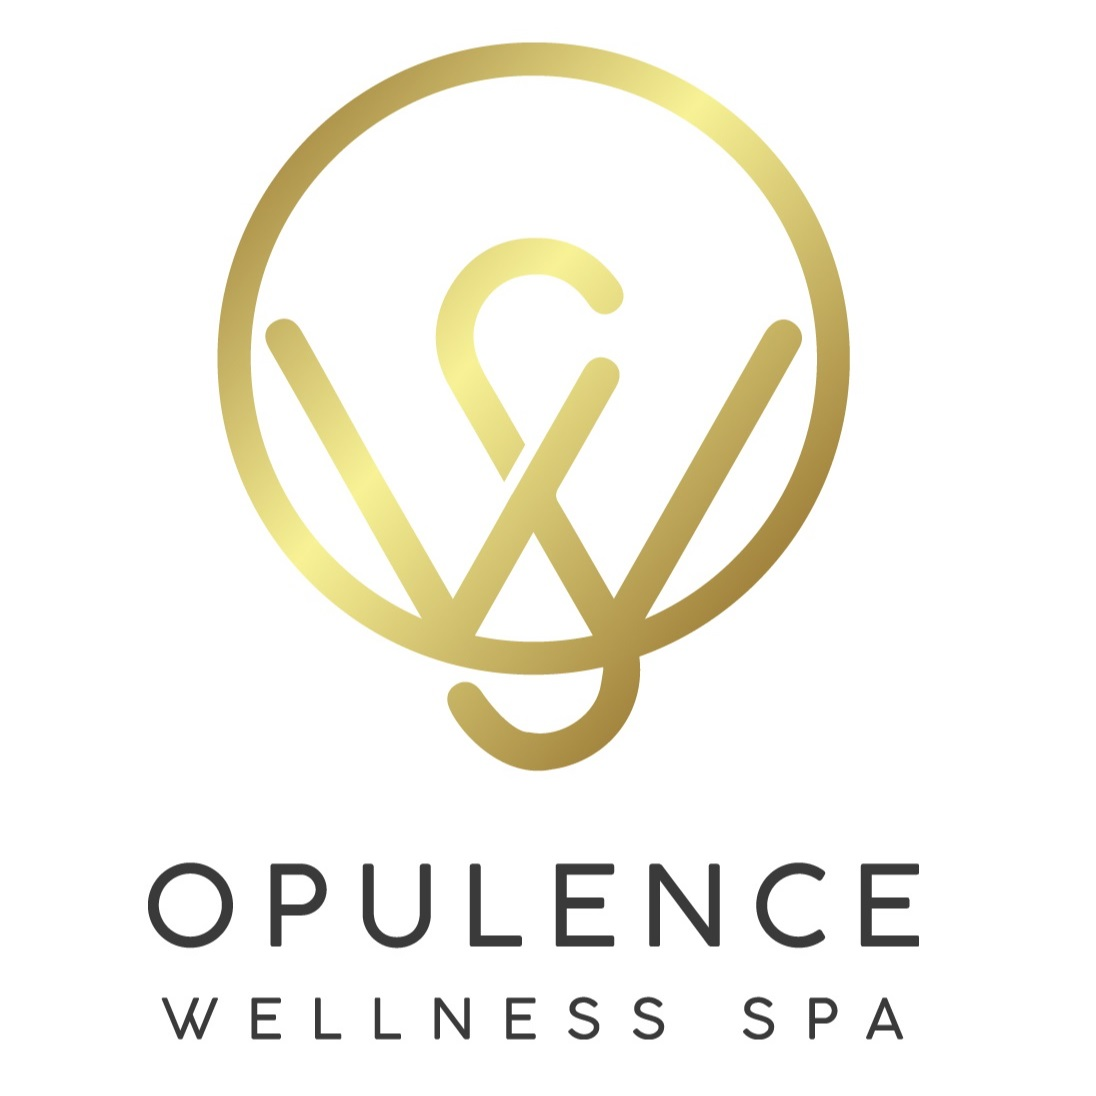 Opulence Wellness Spa